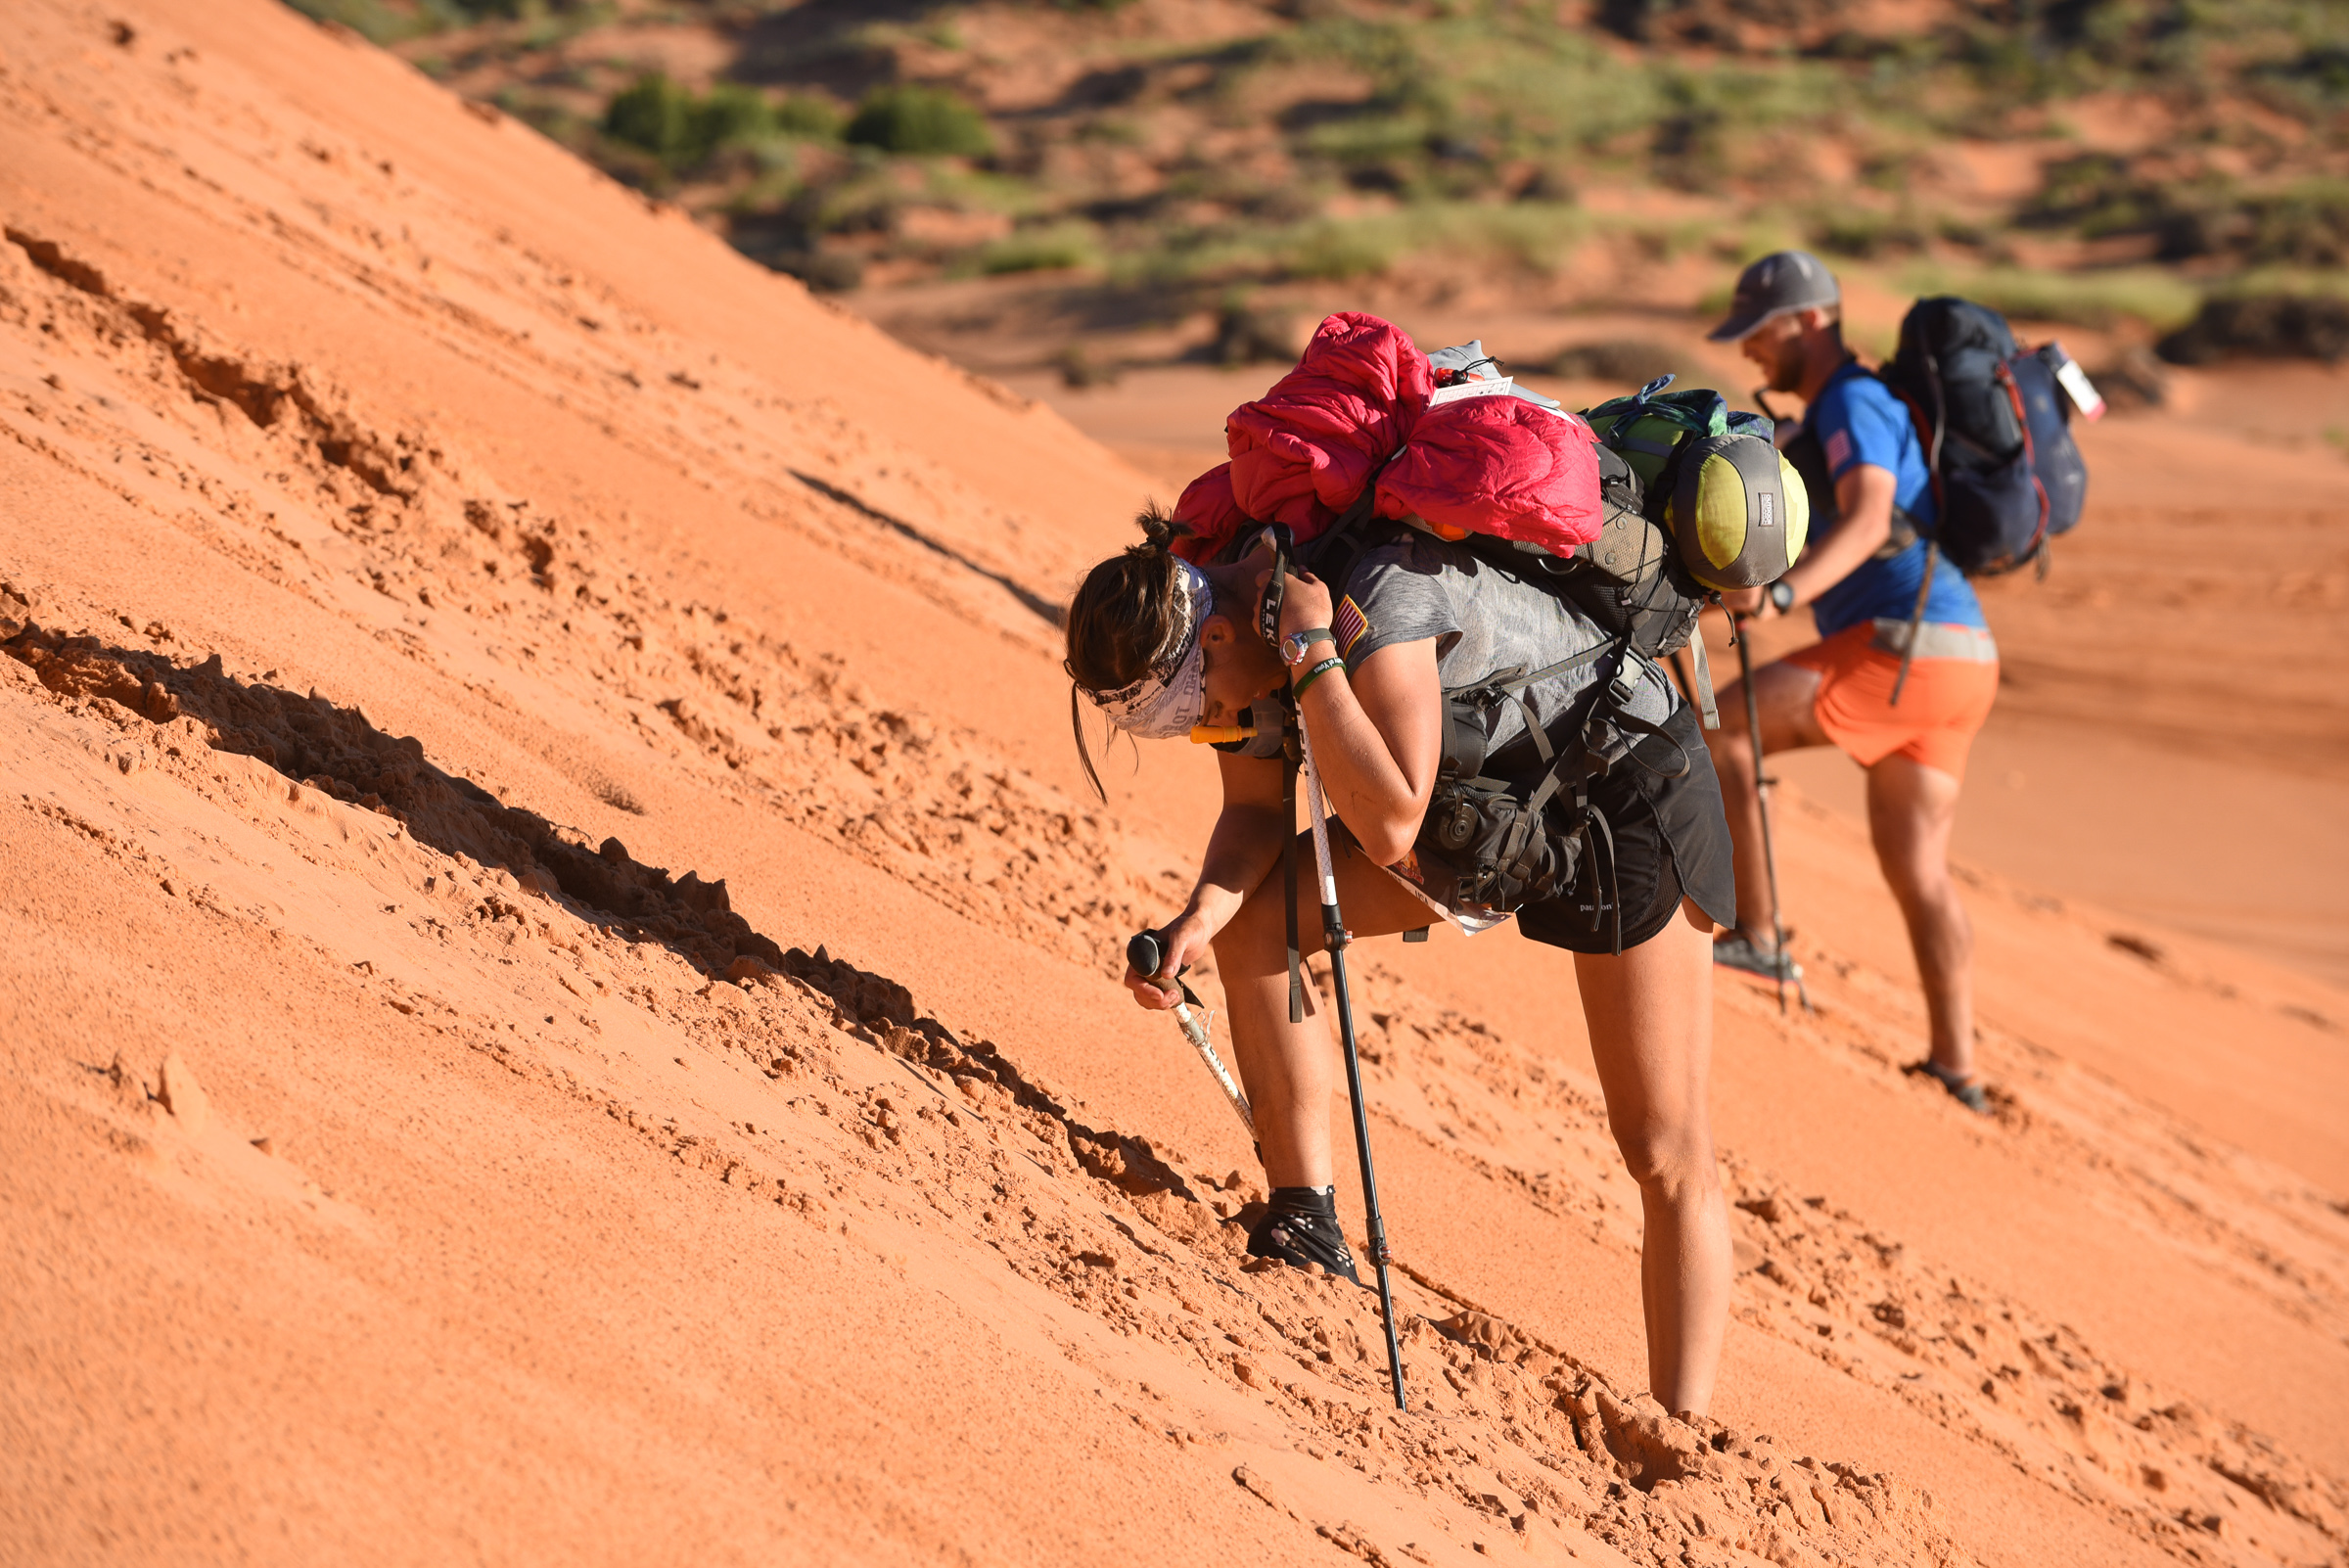 A couple of unidentified participants climbing the dunes toward the end of the 52-mile Stage 3 long stage. Jami had passed through hours ahead of them, in the nighttime.